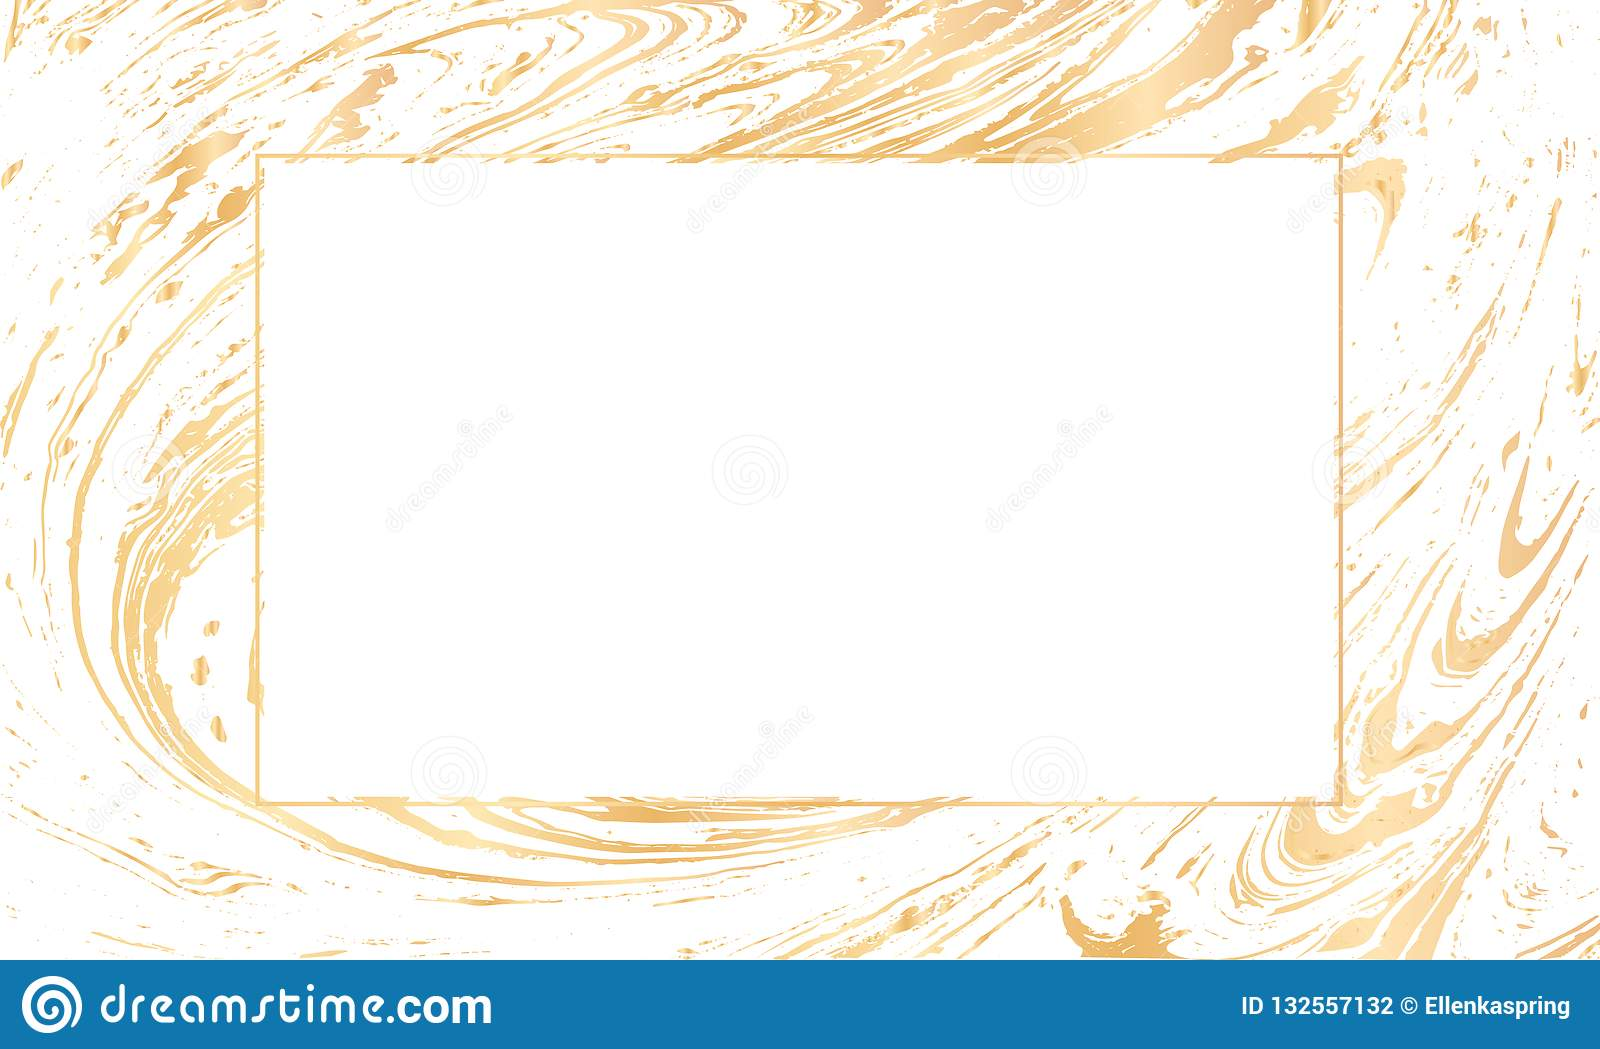 https www dreamstime com vector white gold design template party invitation web banner birthday wedding business card abstract hand drawn golden image132557132